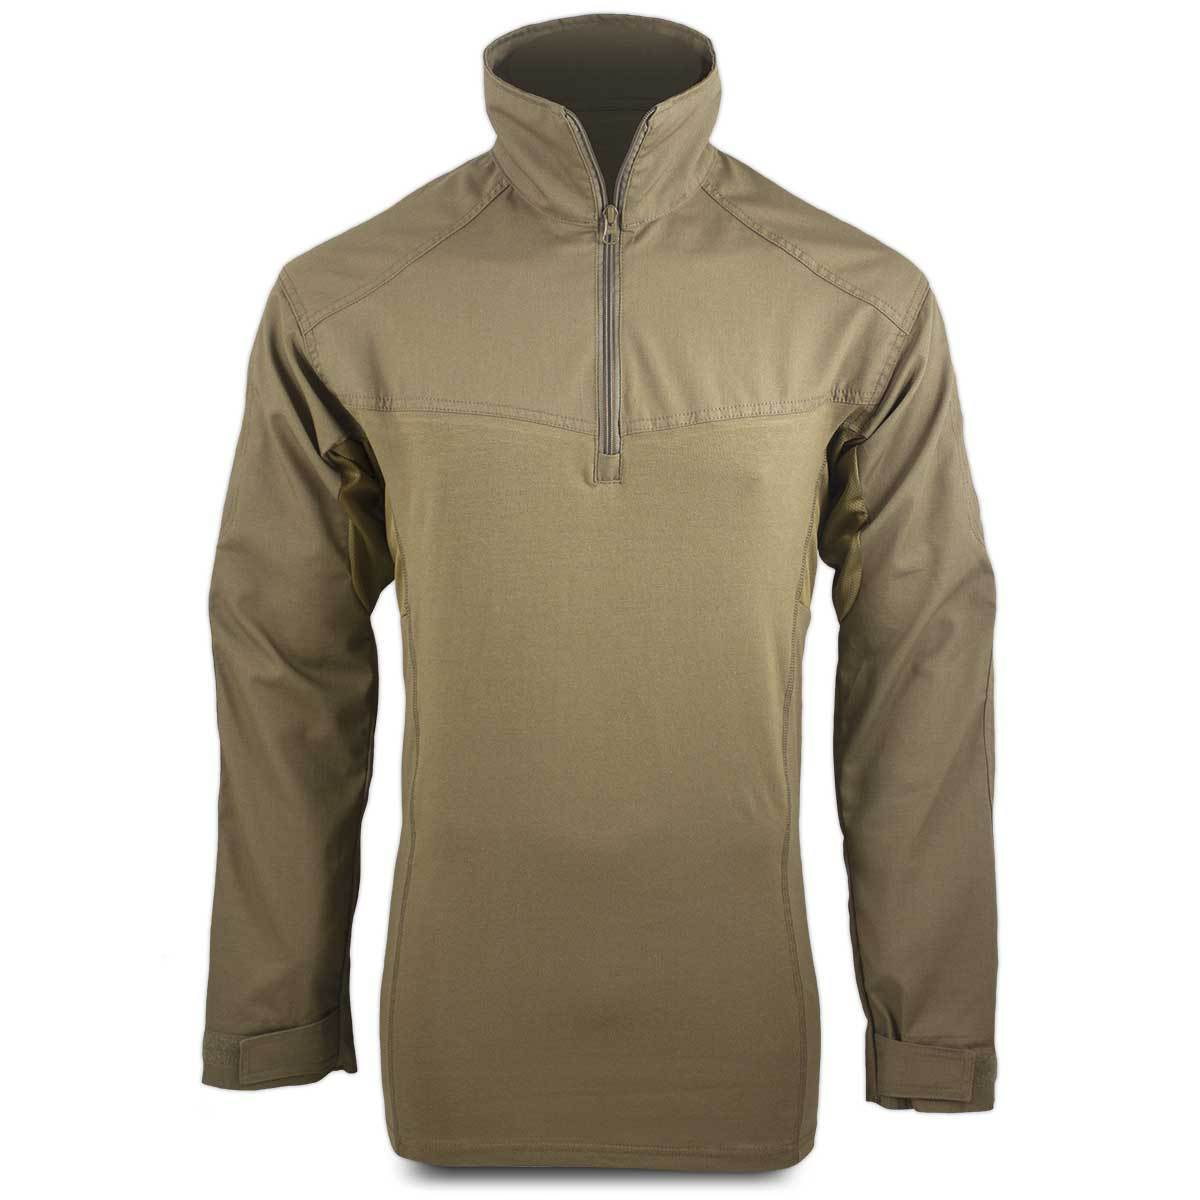 Bulldog MK4 UBACS Combat Shirt Coyote | Bulldog Tactical Gear